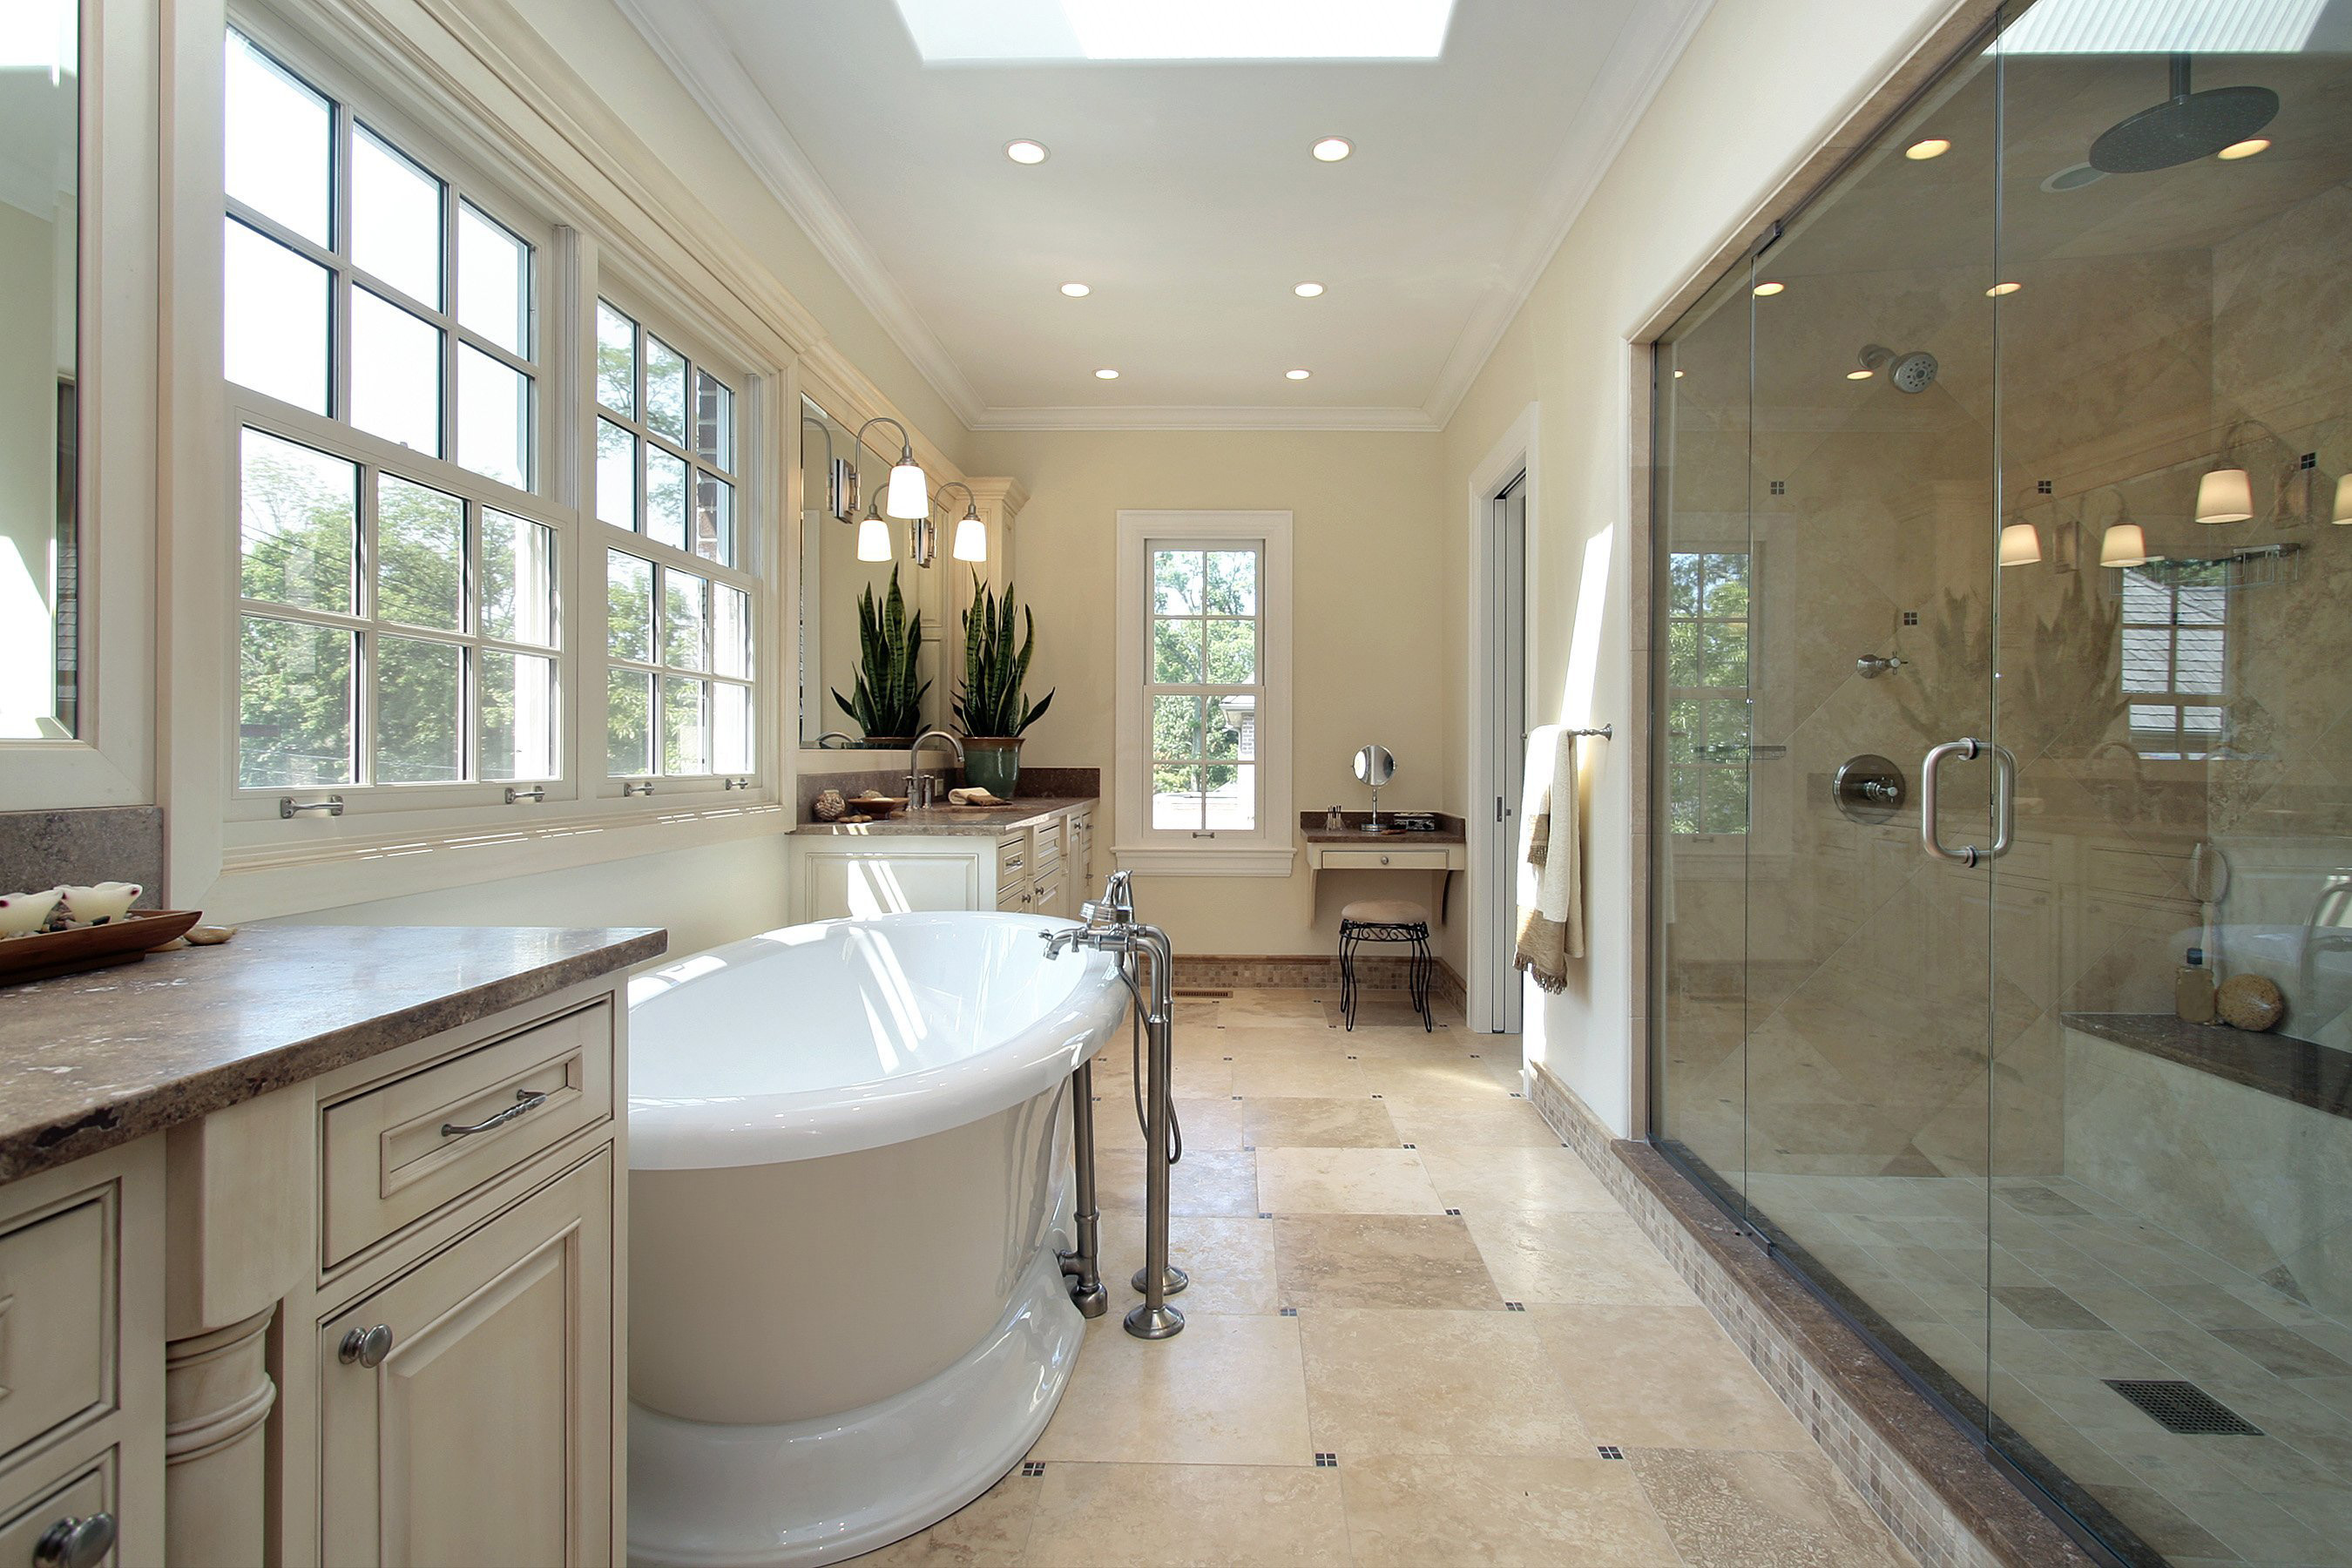 Bathroom Remodeling Trends 2015 current bathroom remodeling trends - friendly contractor